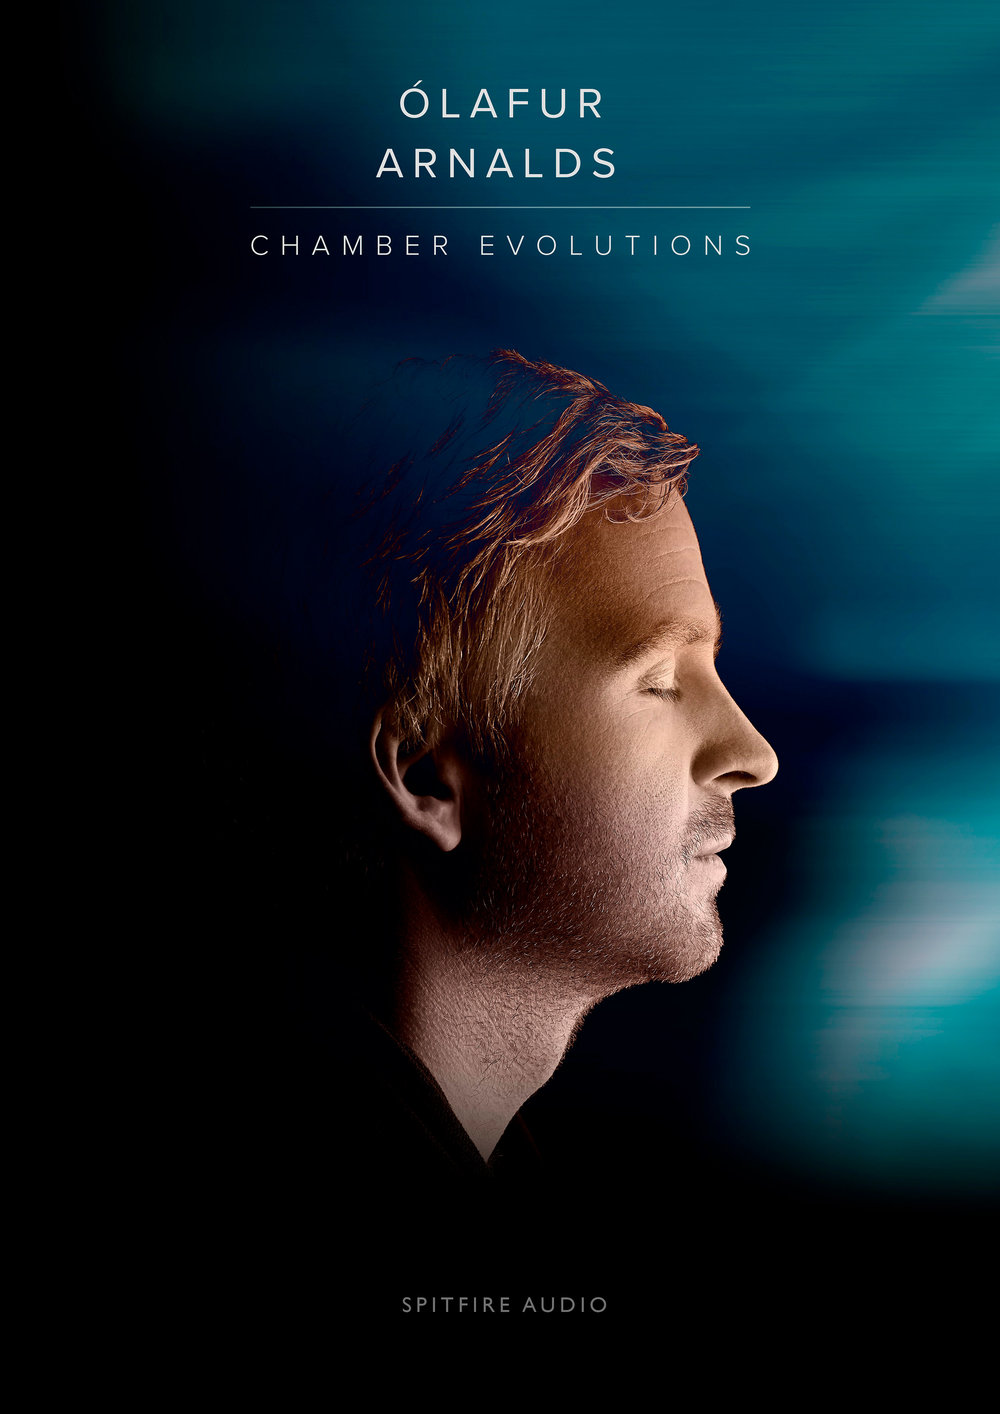 Ólafur Arnalds Chamber Evolutions Artwork Spitfire Audio